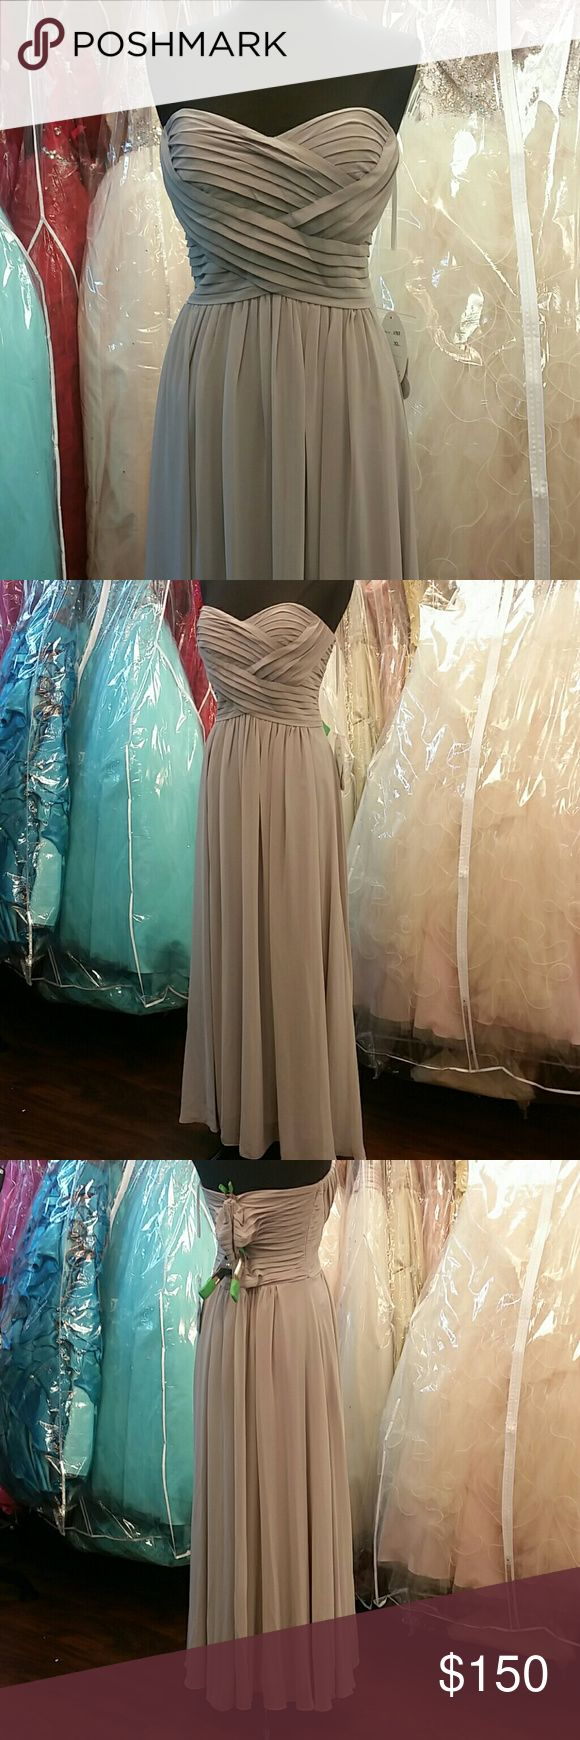 NWT Sweetheart Grey Dress Brand new, zipper back, strapless but includes optional straps, beautiful flowy chiffon, ruching across bodice, simple design, grey/gray dress, great for prom, homecoming, wedding, pageants, parties, or any formal event. Includes matching chiffon shawl. Sherri Hill for exposure. Sherri Hill Dresses